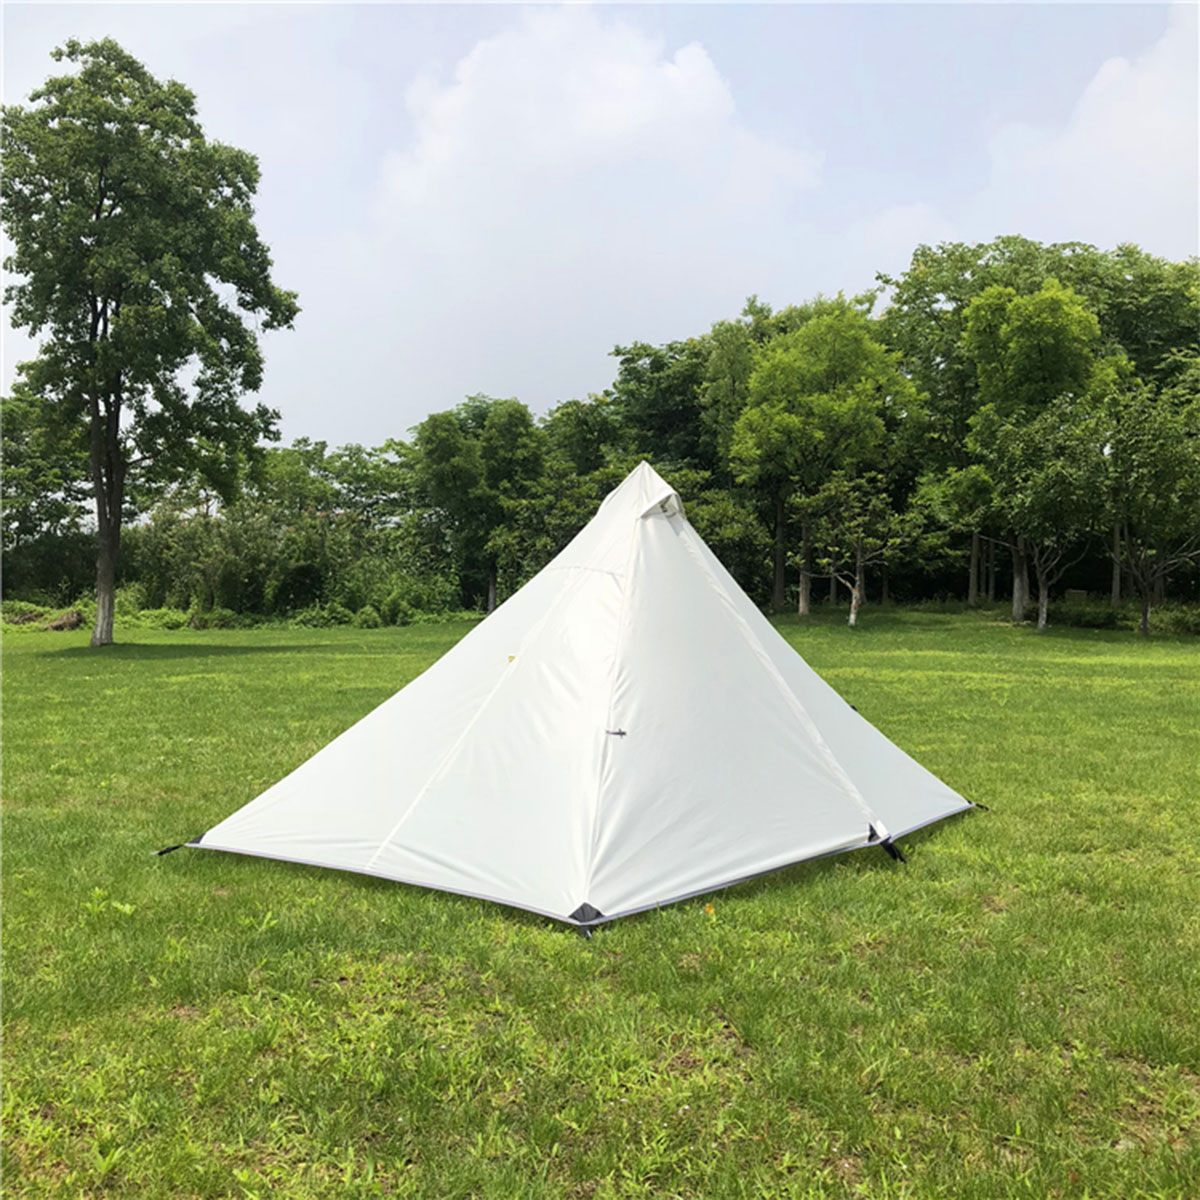 Frugal 210t Oudoor Person Pyramid Tent Rodless Backpacking Waterproof Lightweight Hiking Camping Hiking Fishing Ultralight Tents Customers First